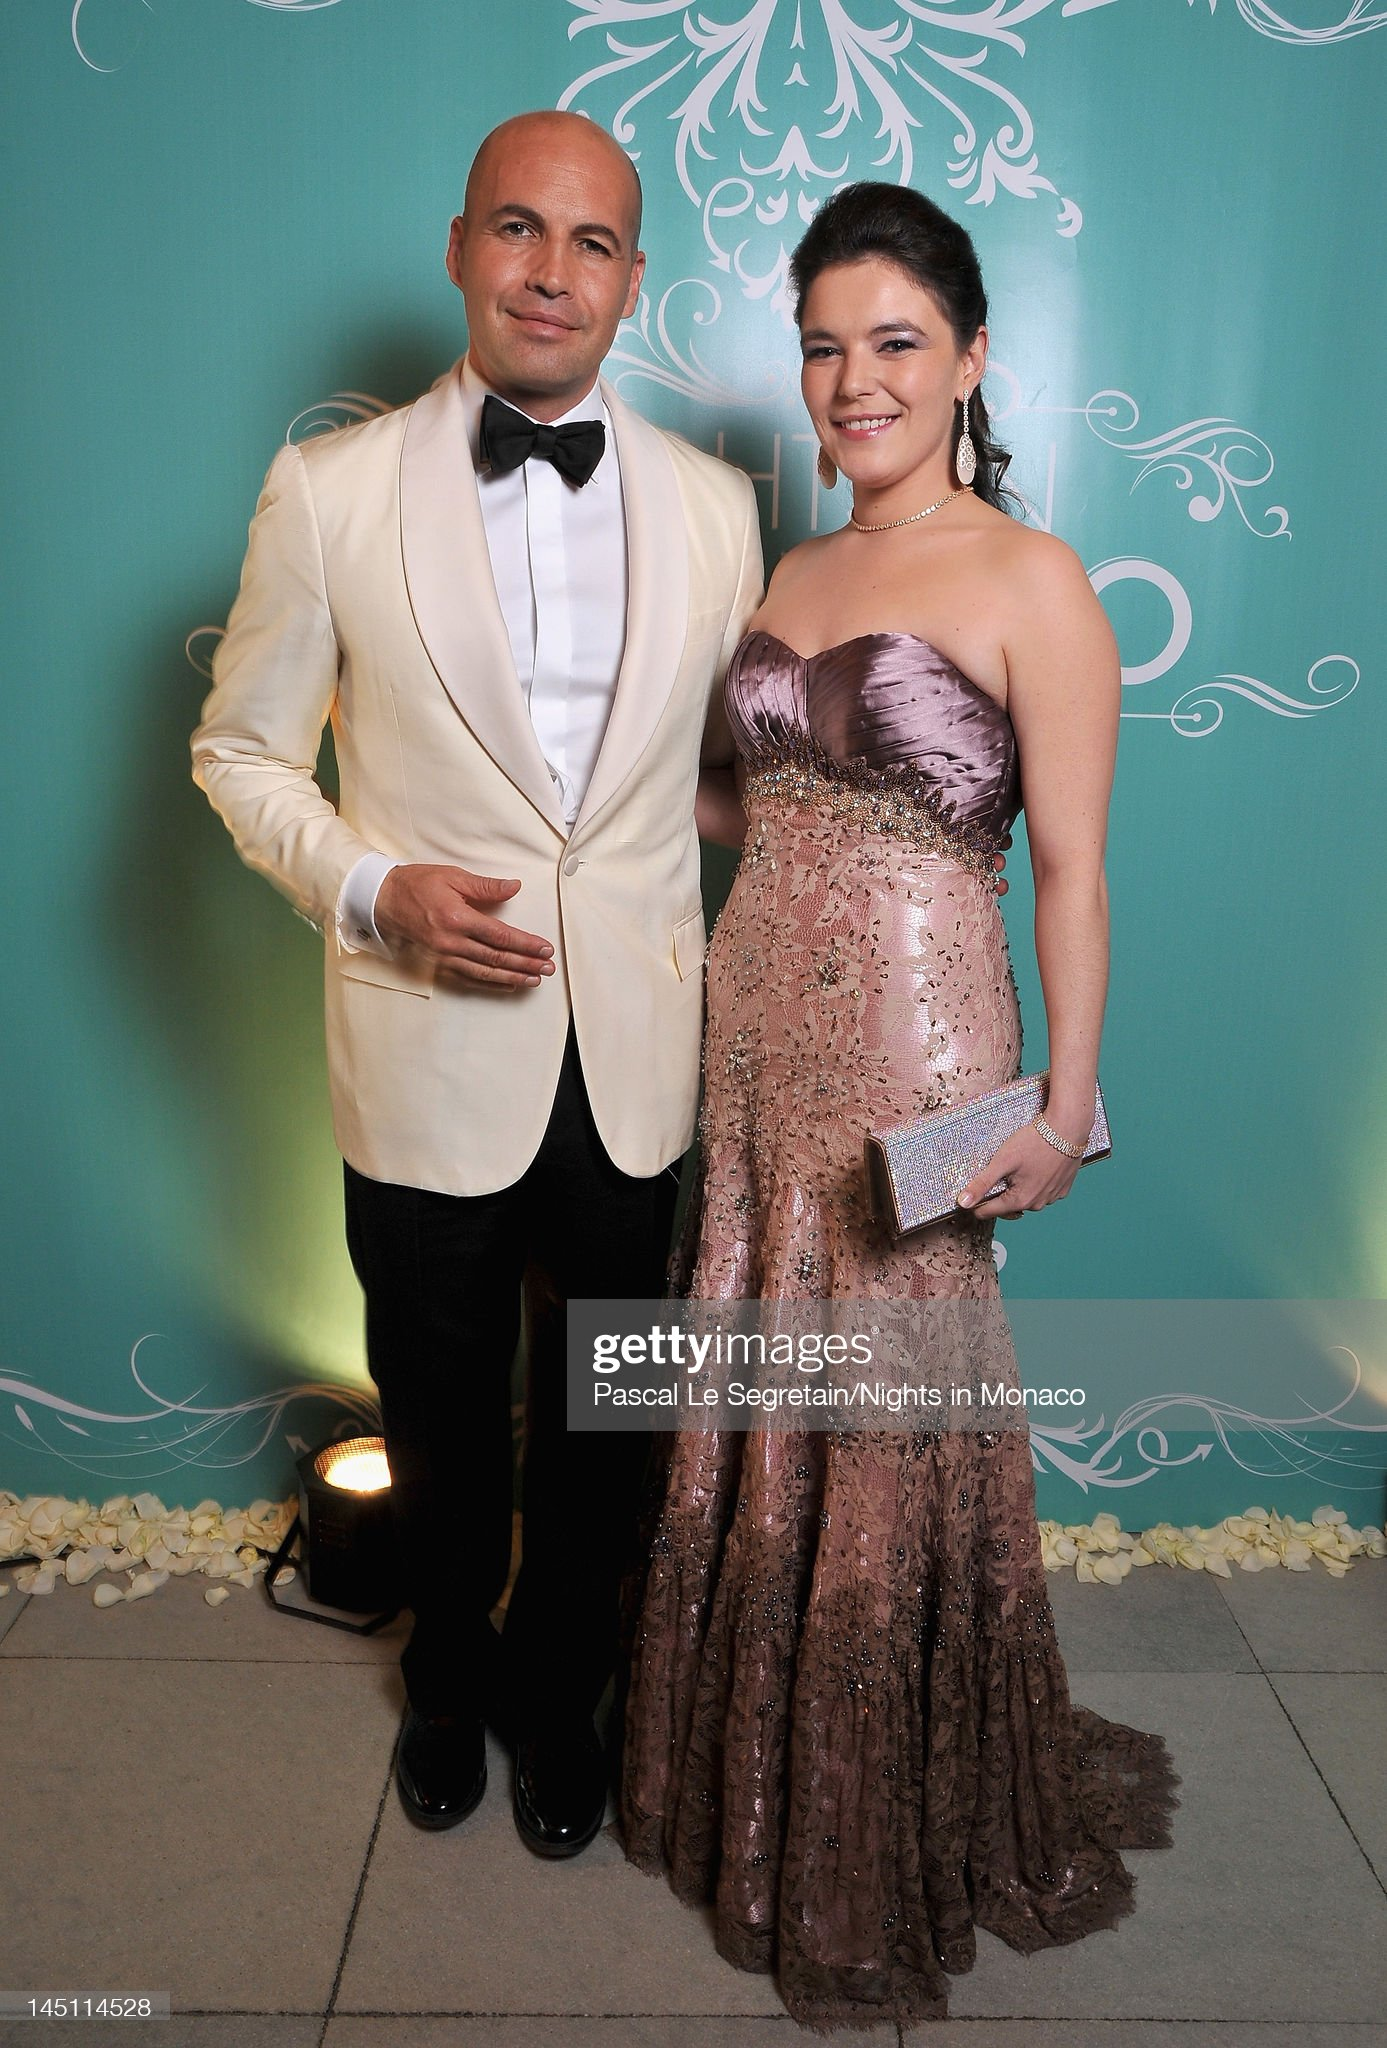 billy-zane-and-melanie-antoinette-de-massy-attend-the-nights-in-gala-picture-id145114528